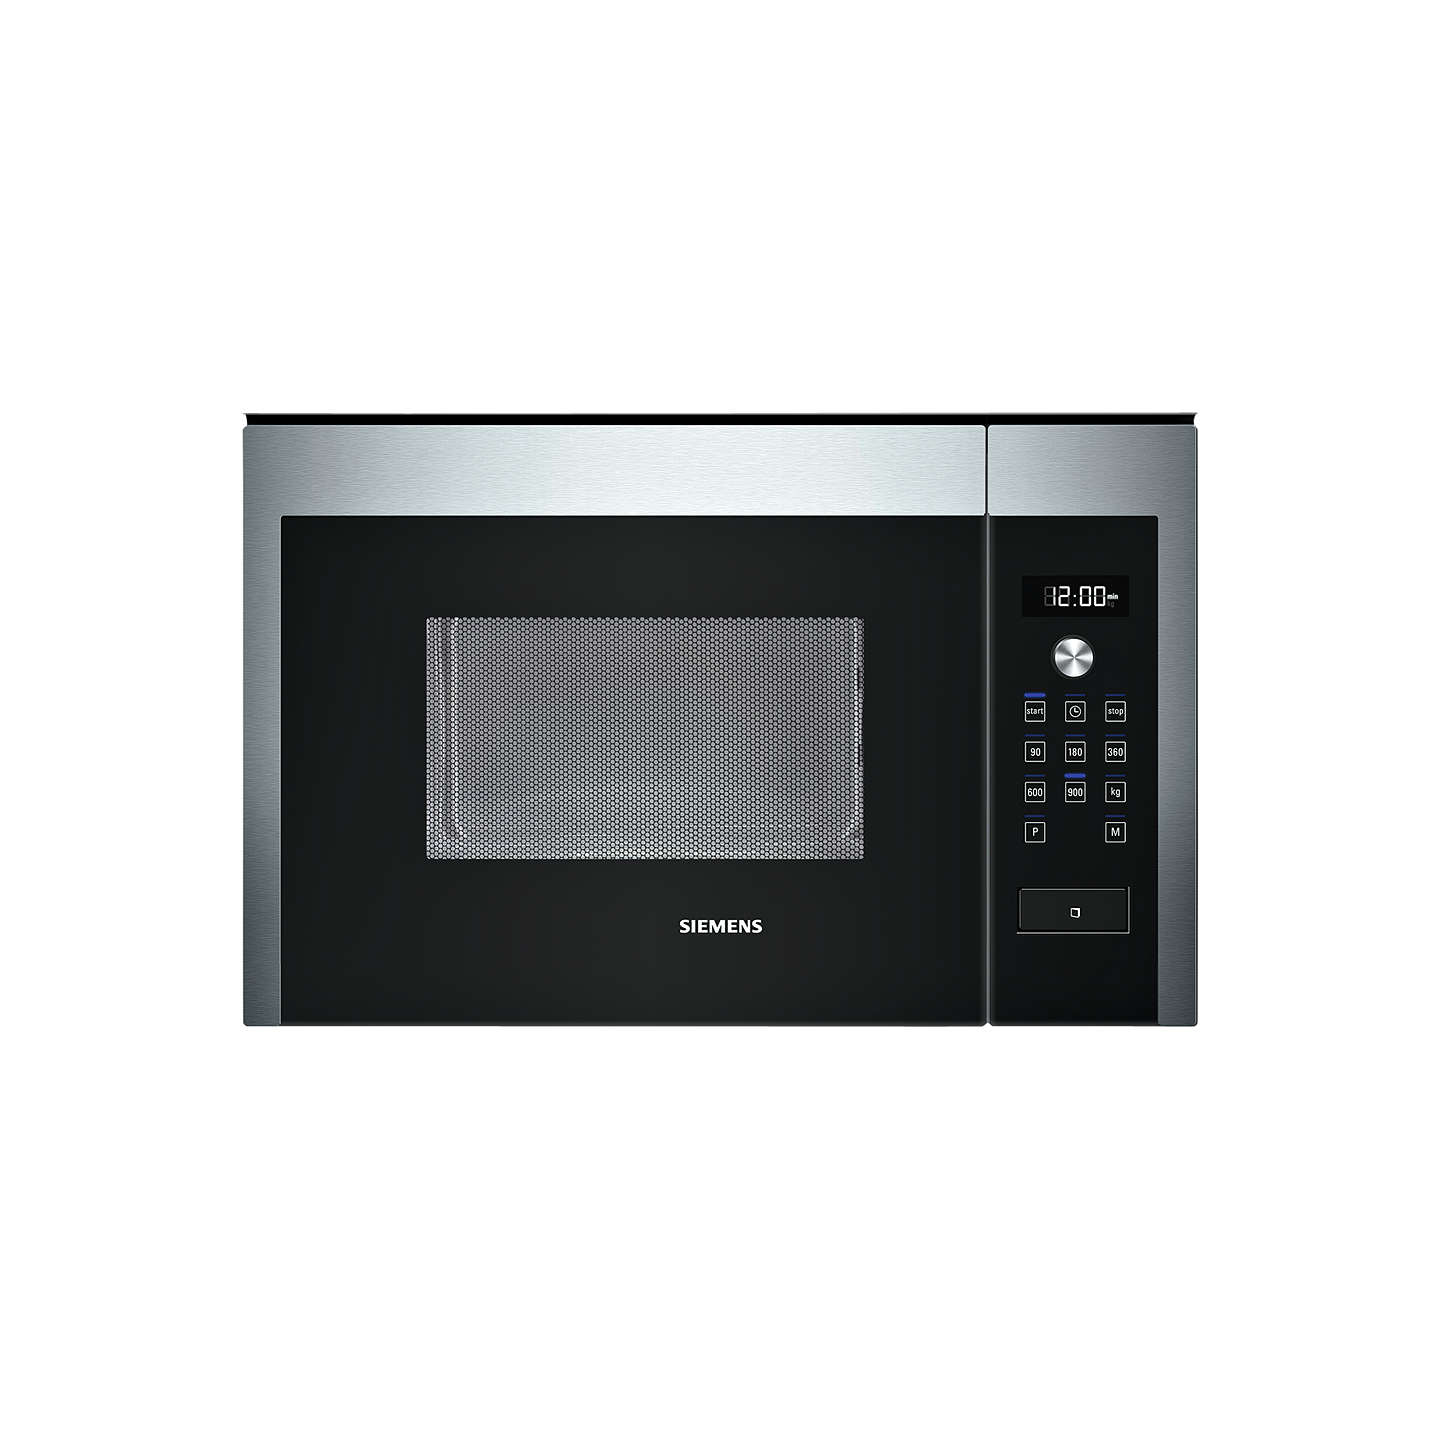 Siemens Hf24m564b Built In Compact Microwave Oven Stainless Steel Online At Johnlewis